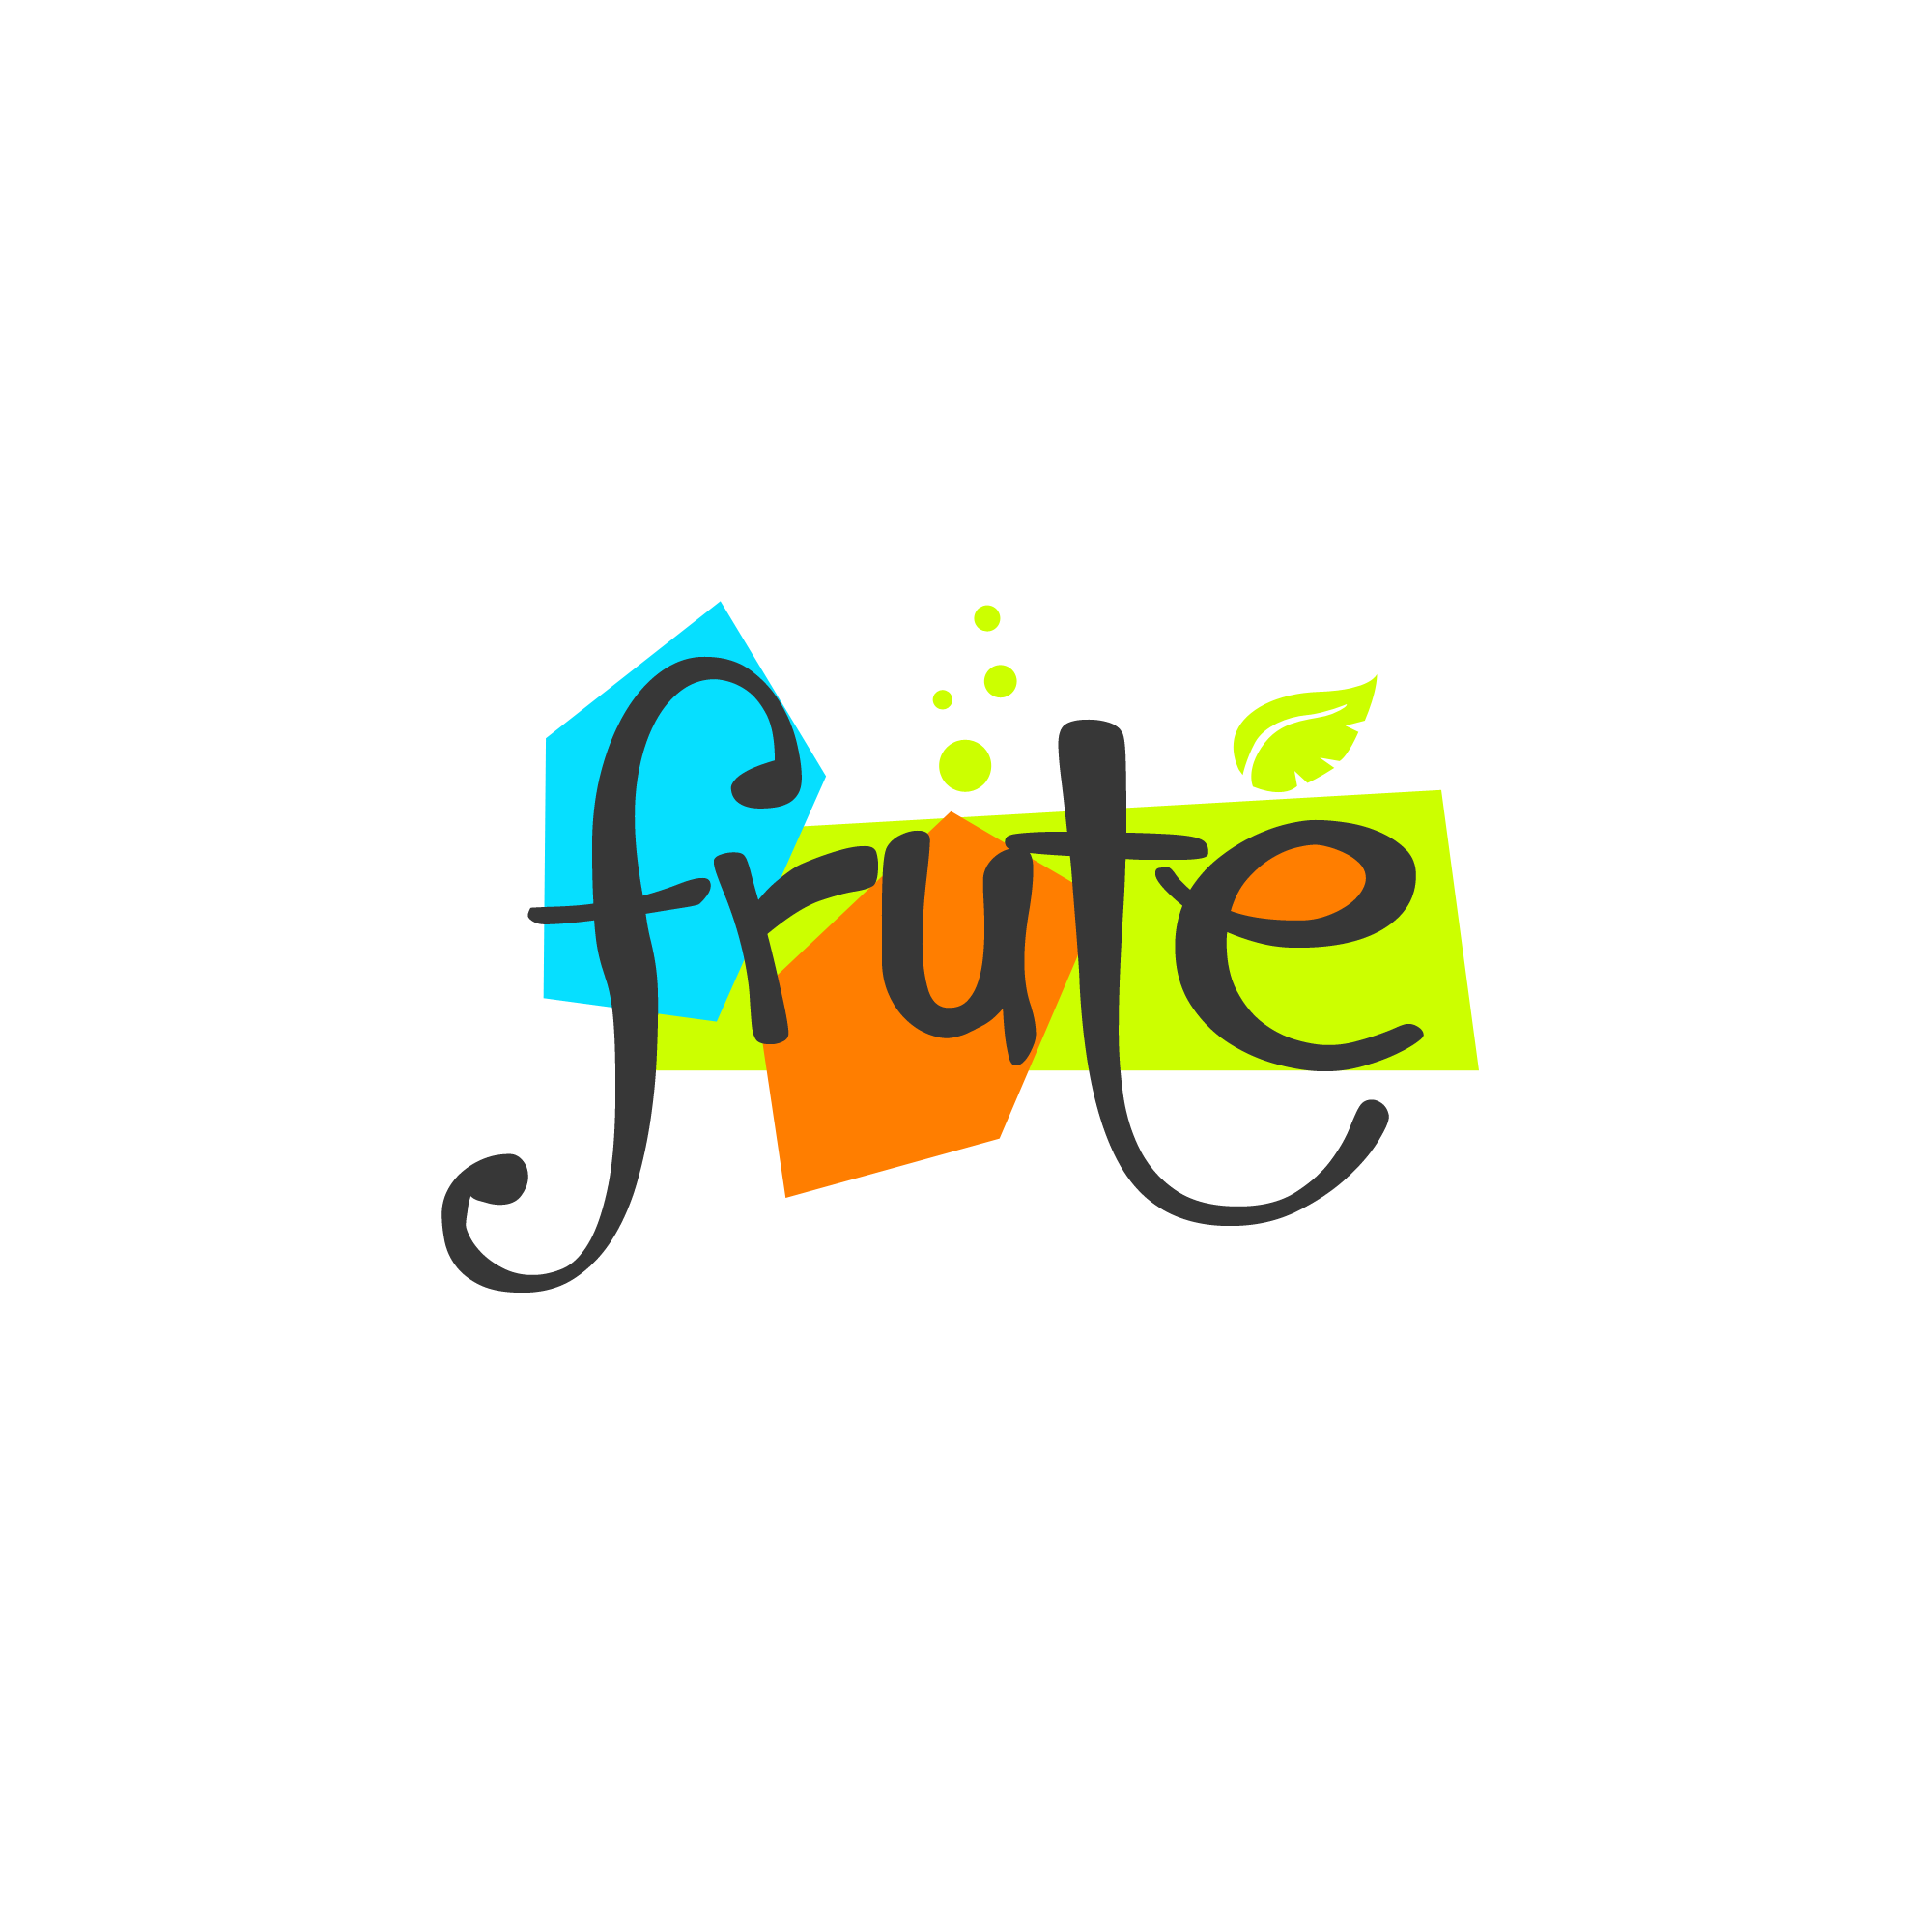 Logo Design by Kenneth Joel - Entry No. 47 in the Logo Design Contest Imaginative Logo Design for Fruté.